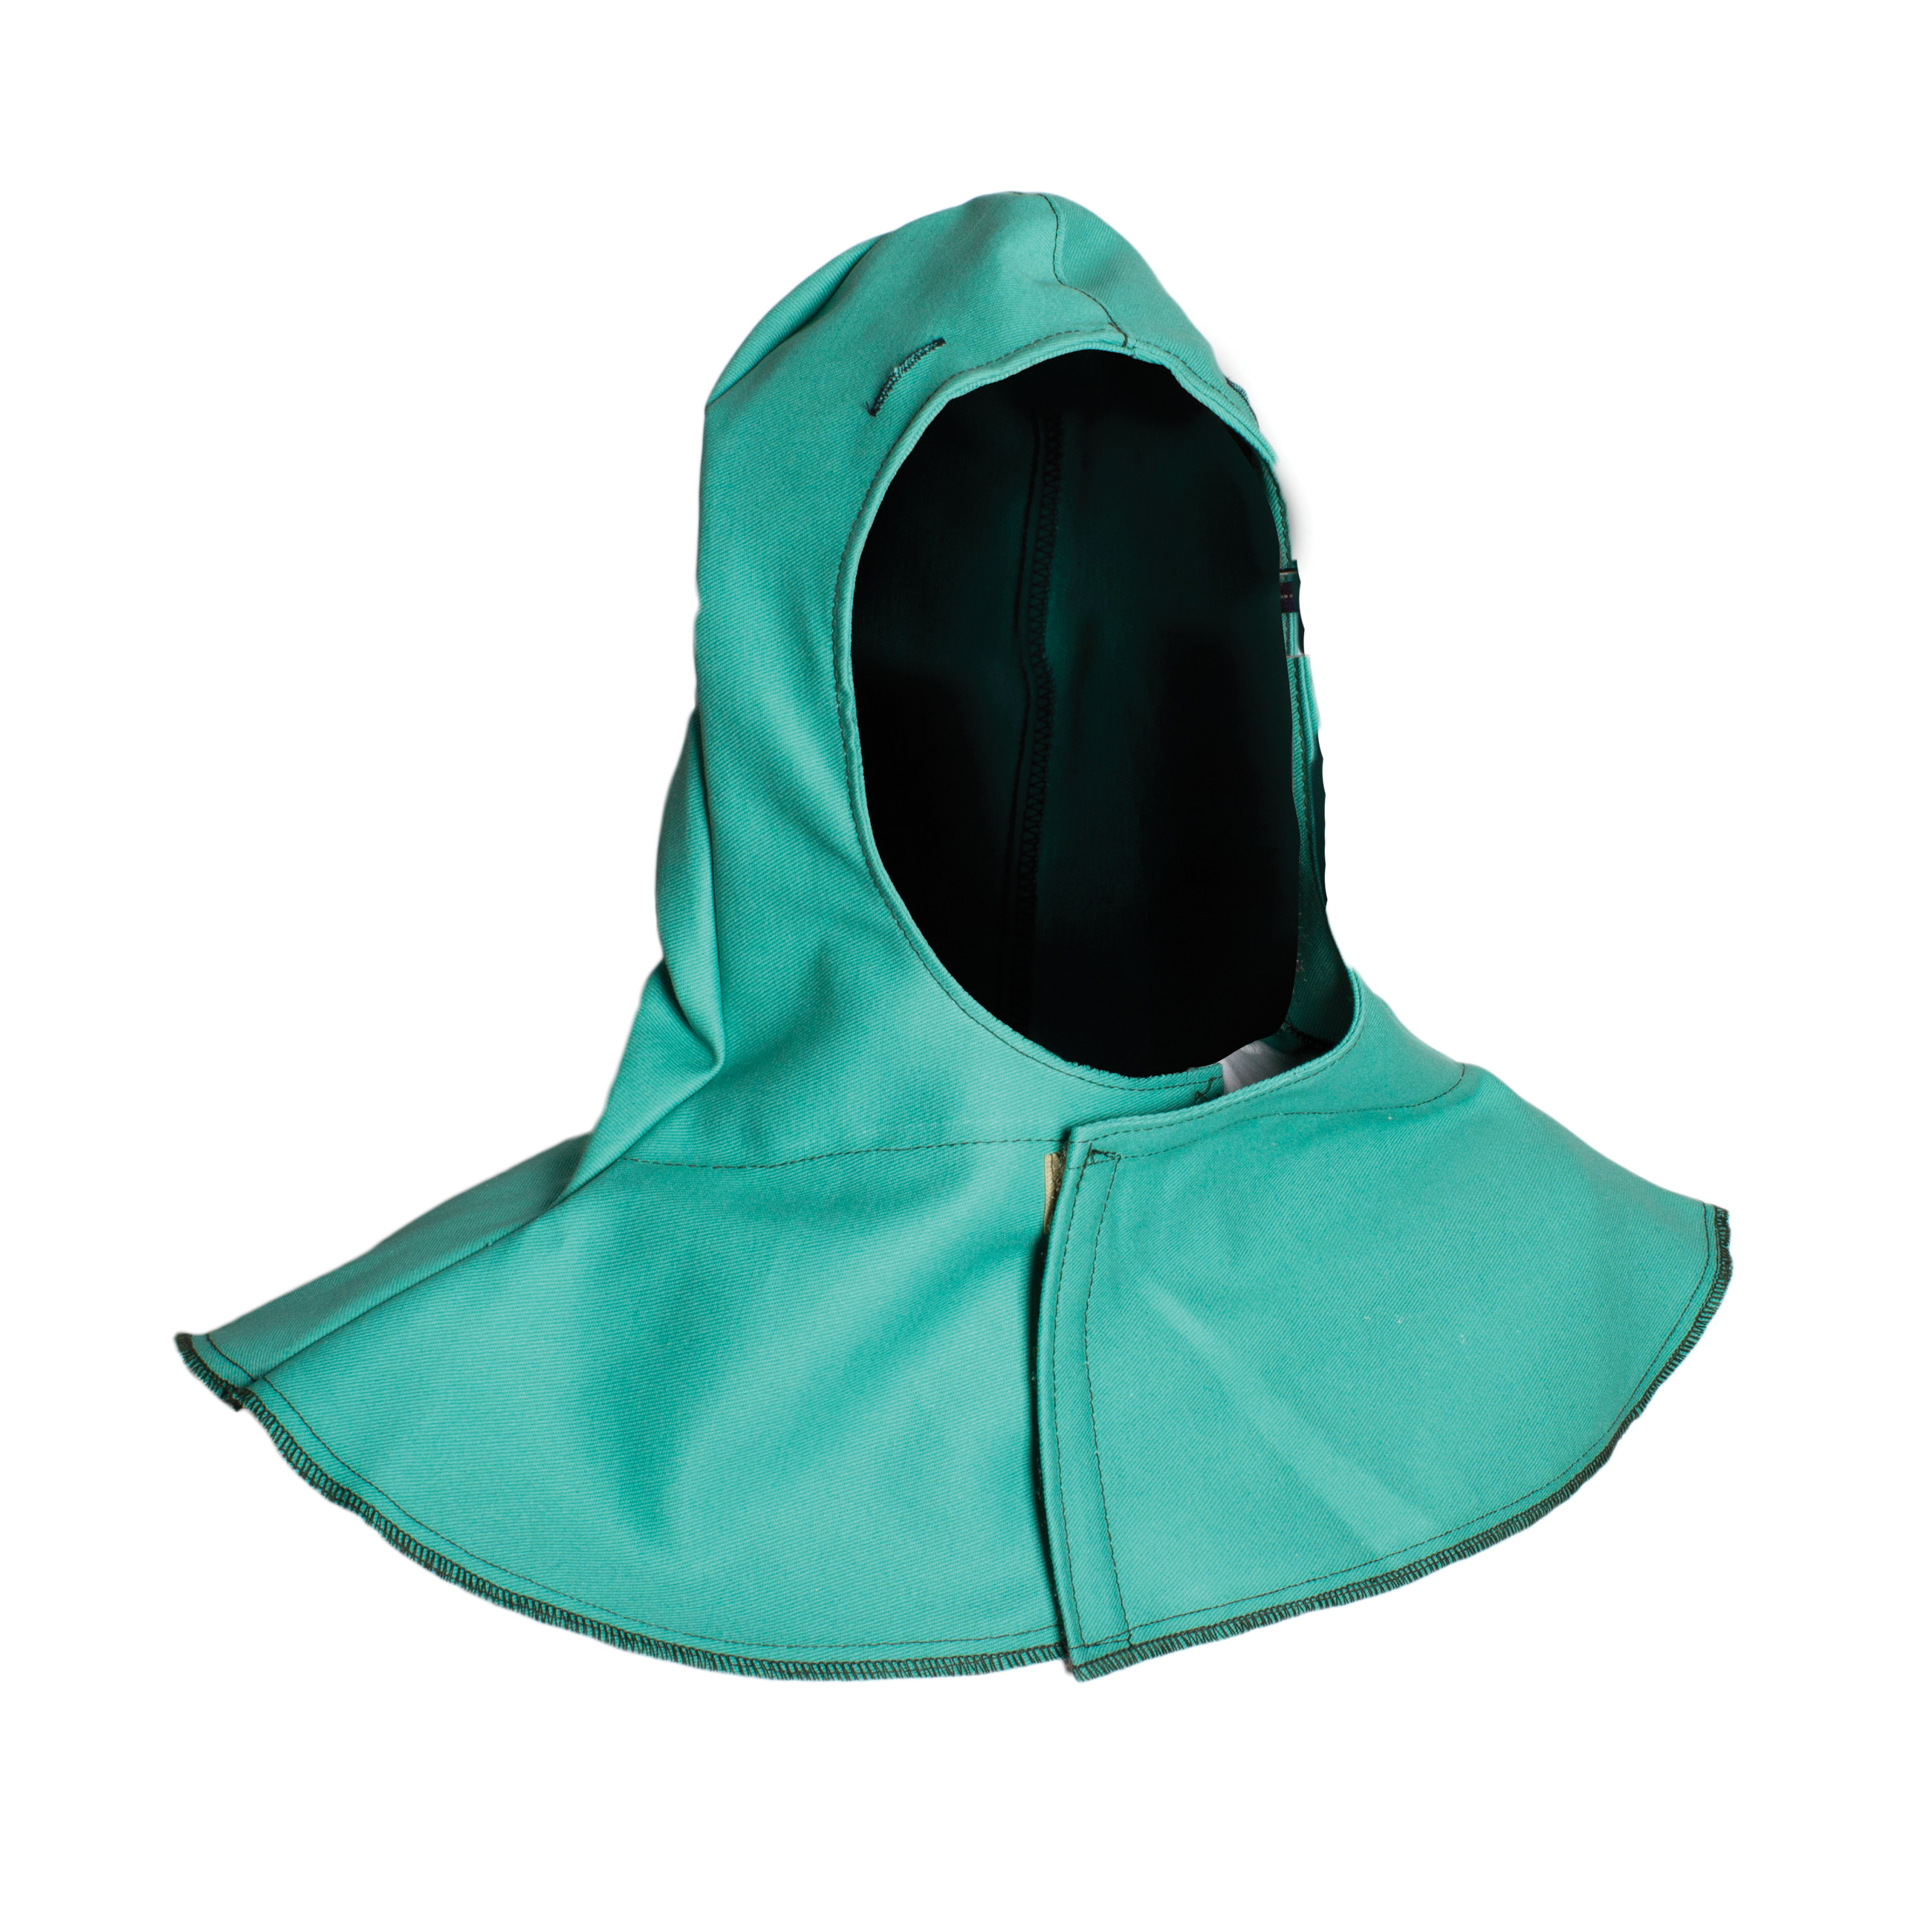 CARBON ARMOUR™ H61MH Flame-Resistant Knit Hood, Universal, White, Nomex®/Modacrylic Blend, 6 oz Fabric